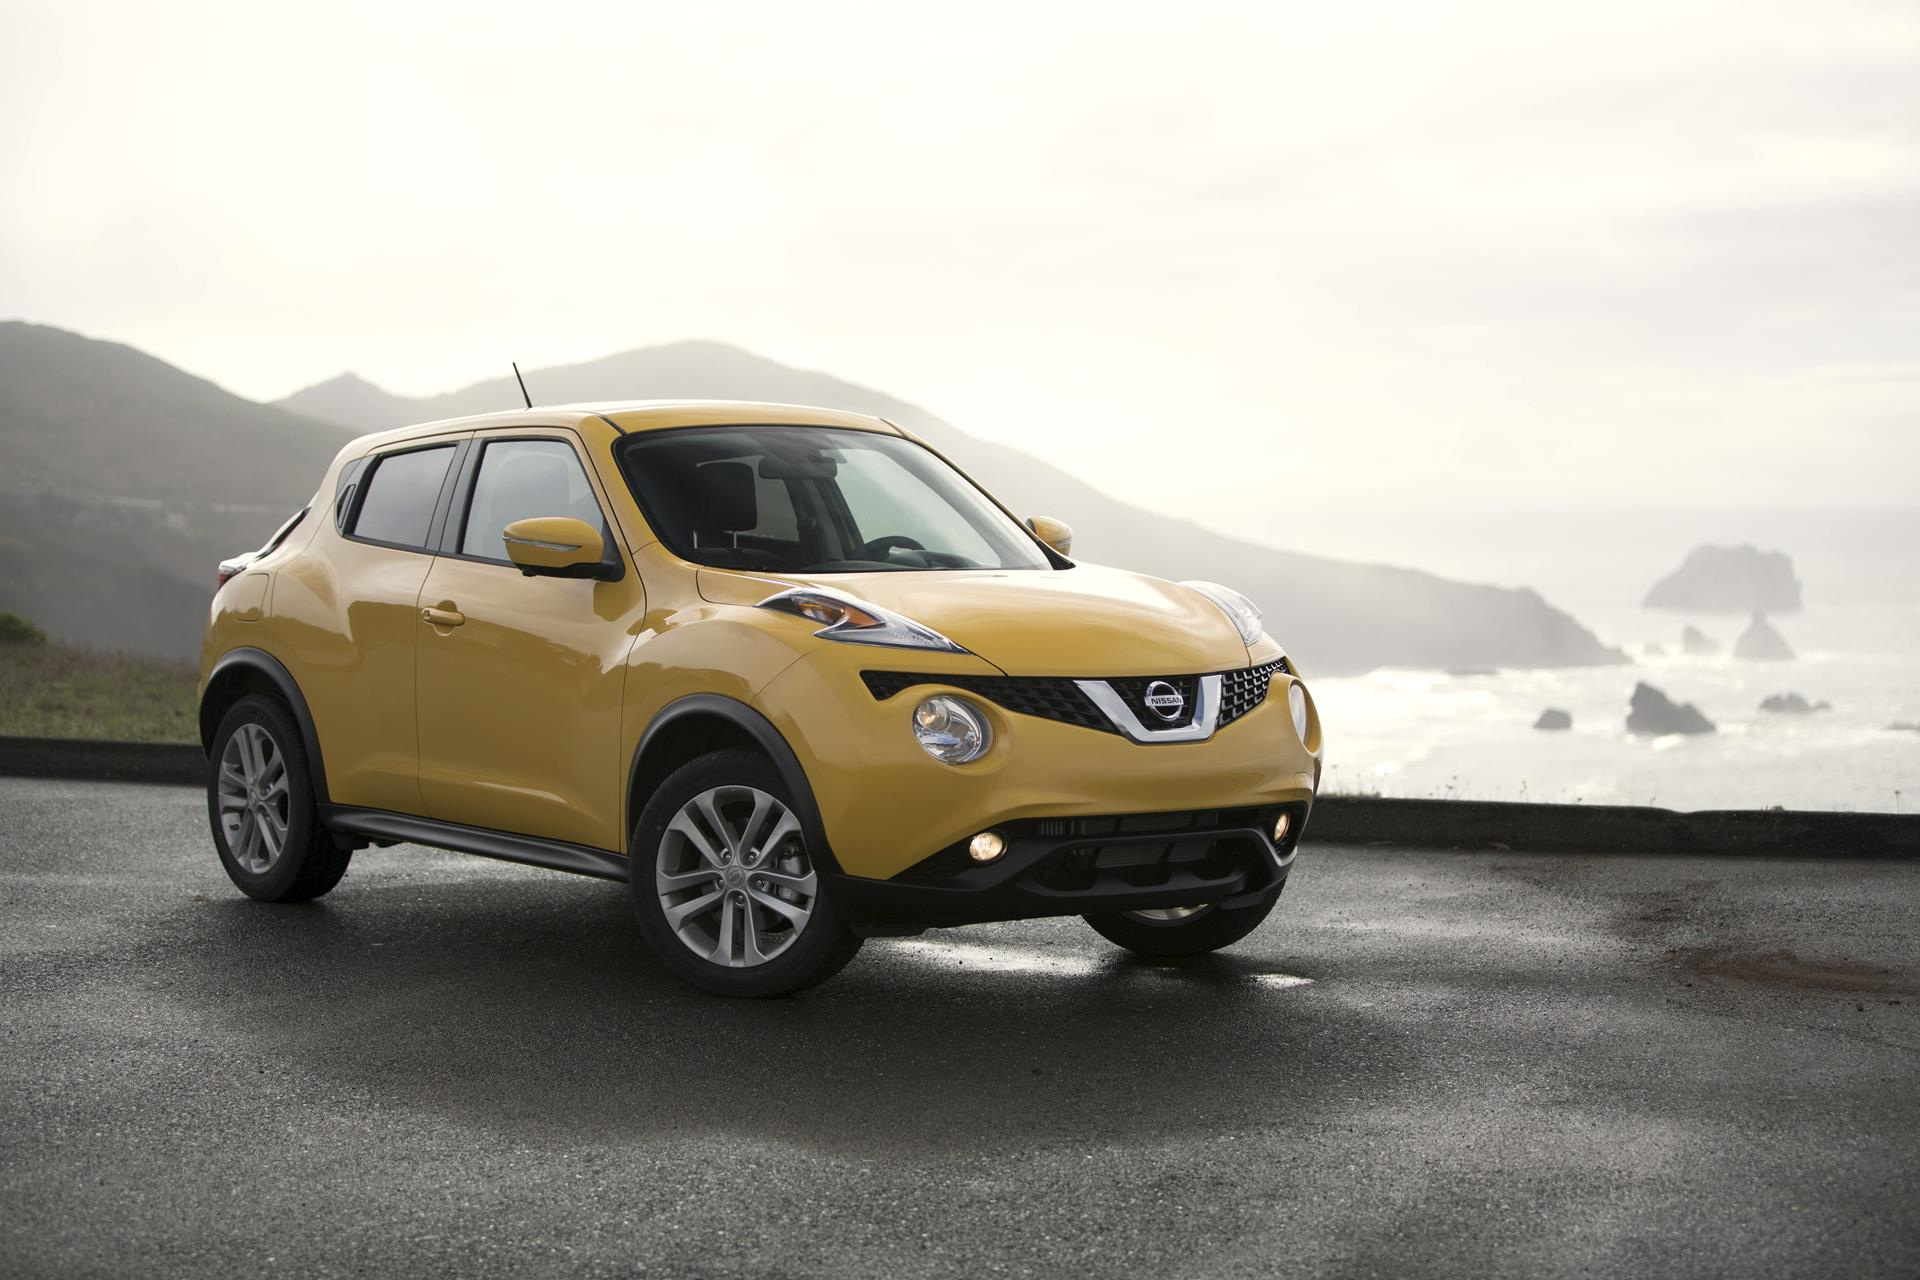 2016 nissan juke technical specifications and data engine dimensions and mechanical details. Black Bedroom Furniture Sets. Home Design Ideas